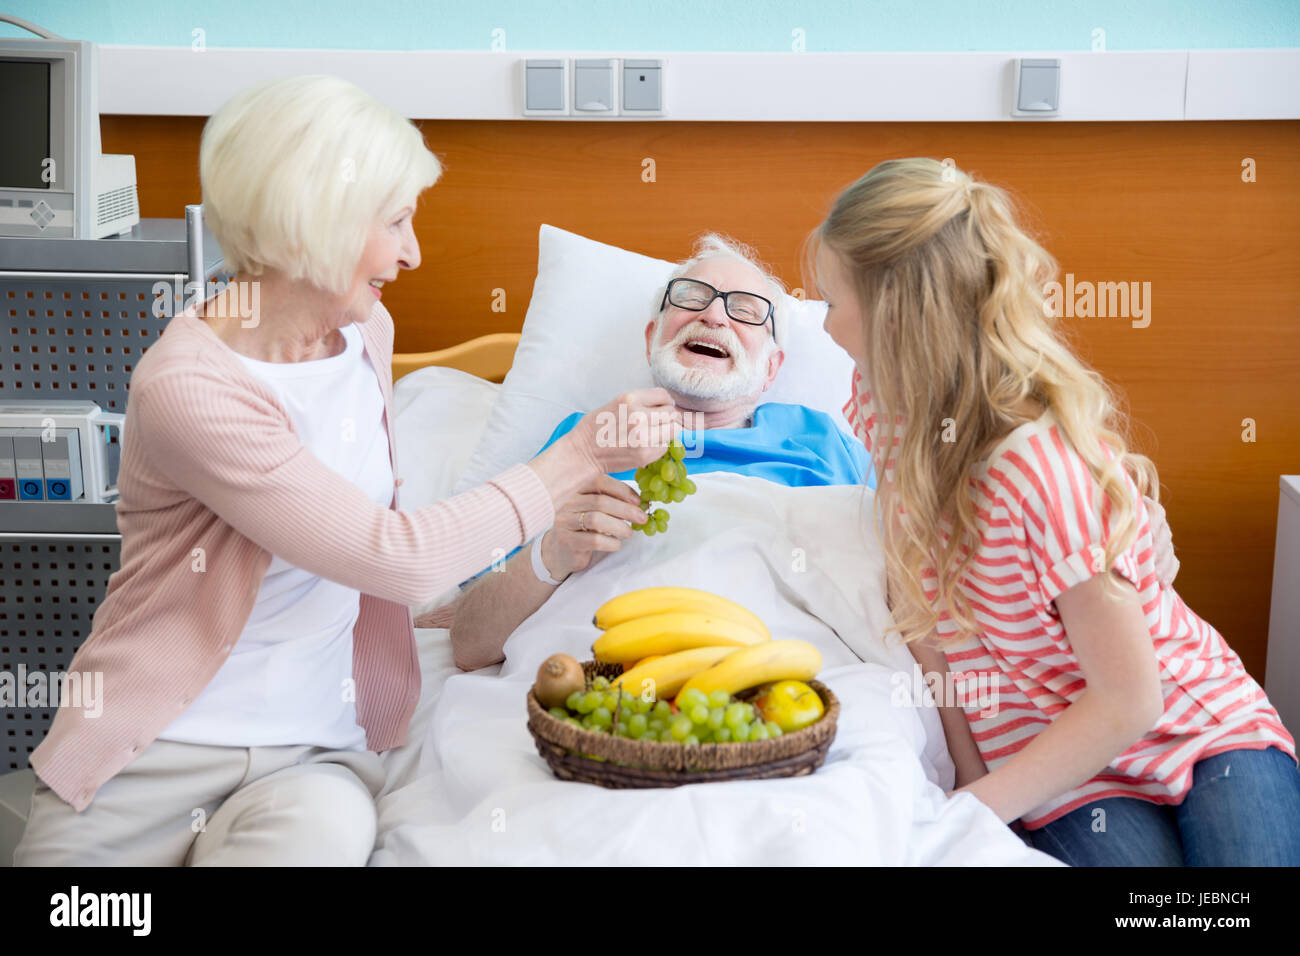 grandmother and granddaughter with fruits visiting patient in hospital. male patient in hospital bed concept - Stock Image